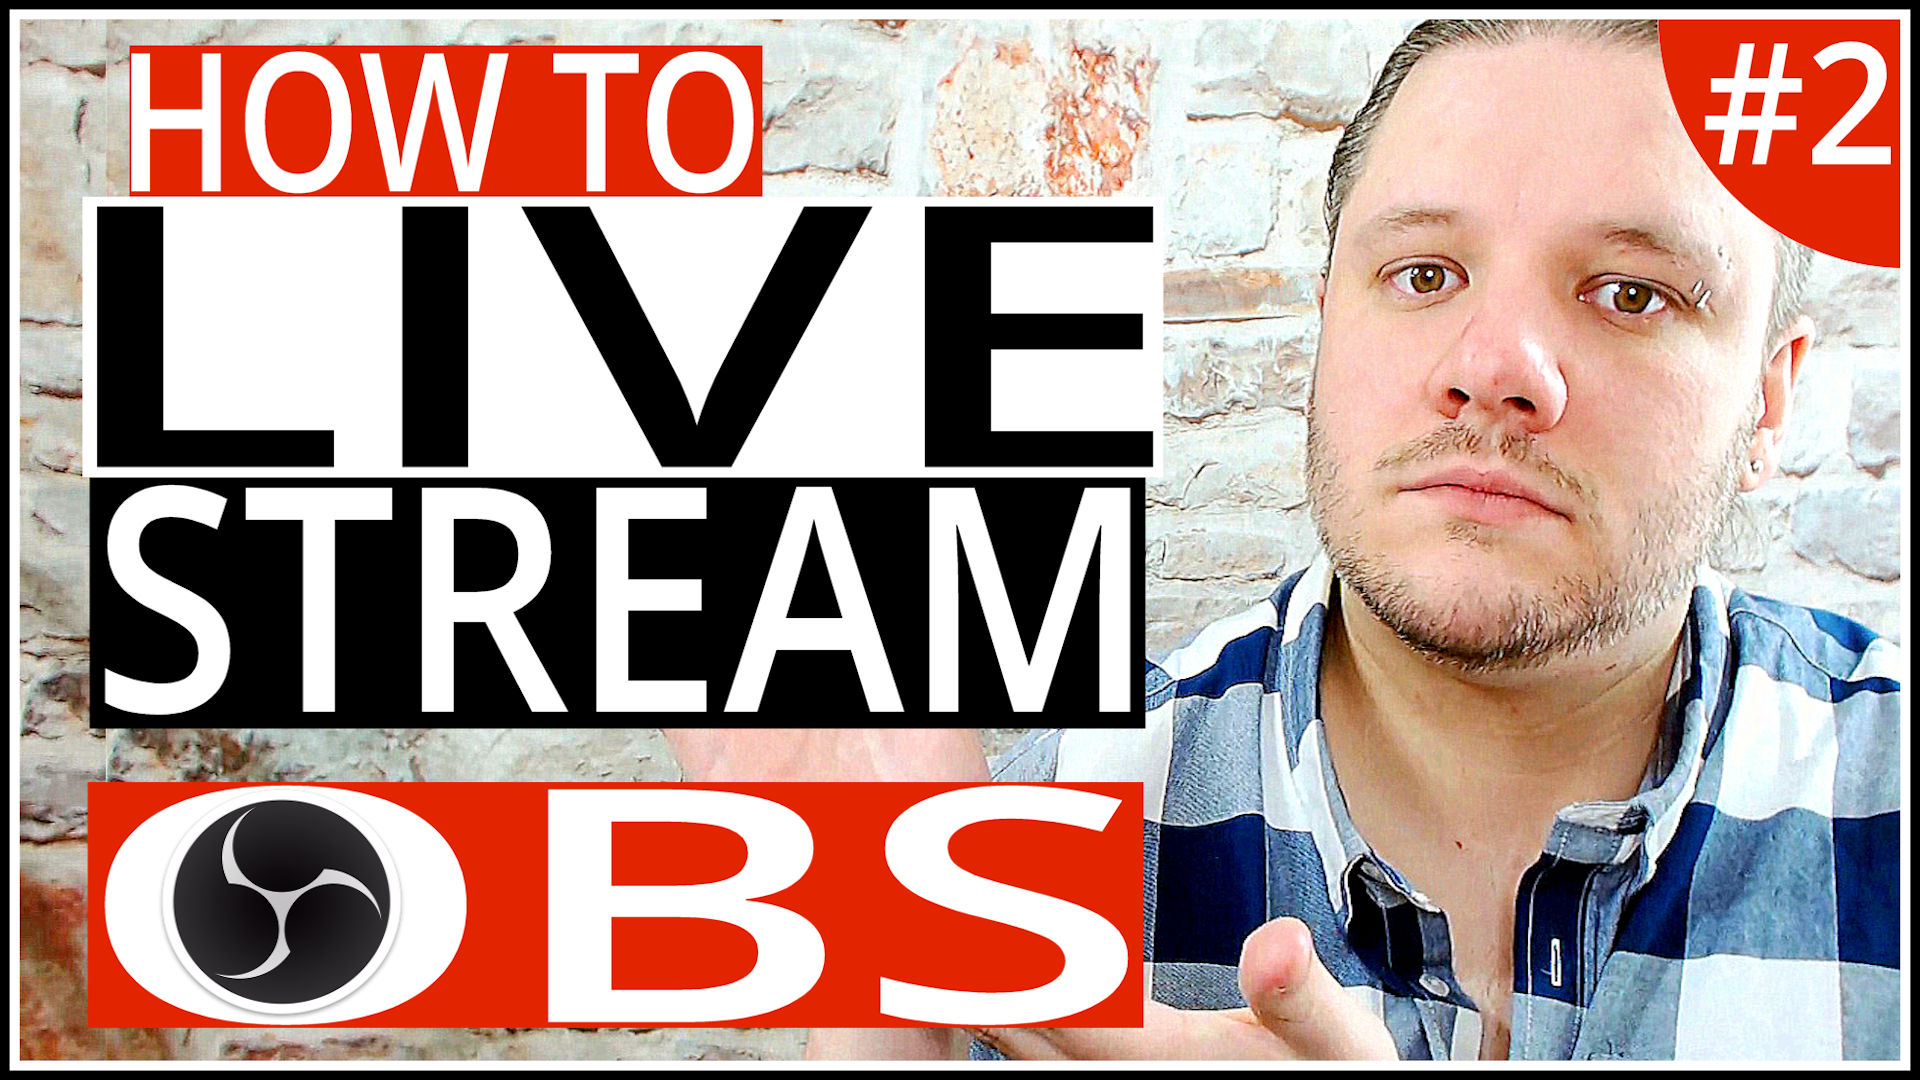 How To Live Stream On YouTube,live stream,live stream tutorial,obs live stream tutorial,how to live stream,obs youtube live stream tutorial,how to live stream obs,how to livestream on youtube obs,how to livestream on youtube obs studio,how to livestream on youtube with obs,obs,obs live stream youtube,obs youtube,live stream on youtube,live stream with obs,live stream obs,tutorial,obs studio,live stream with obs studio,how to setup a live stream with obs,asyt